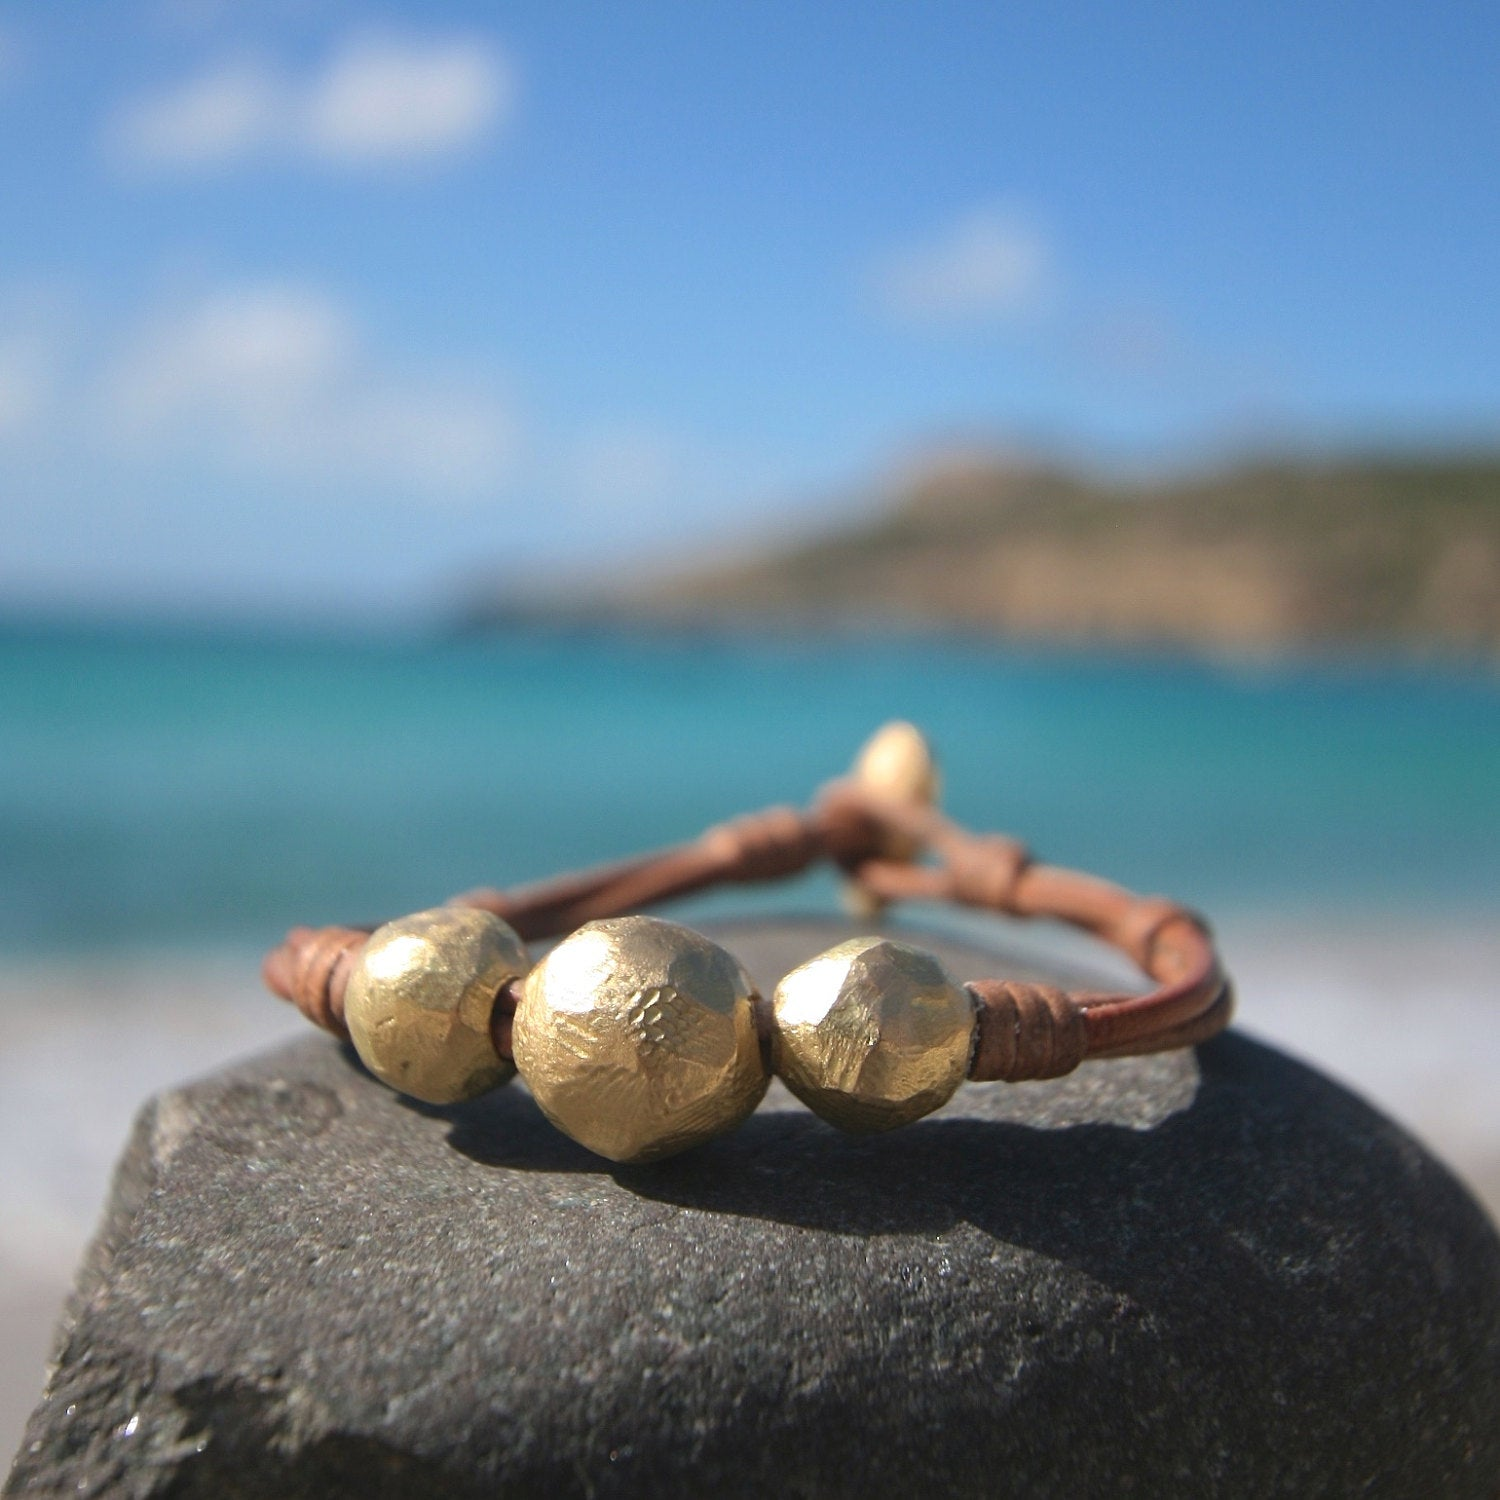 Solid 18k handmade gold beads strungs on leather. luxury jewelry, one of a kind solid gold design, St Barth island, genuine plain gold beads